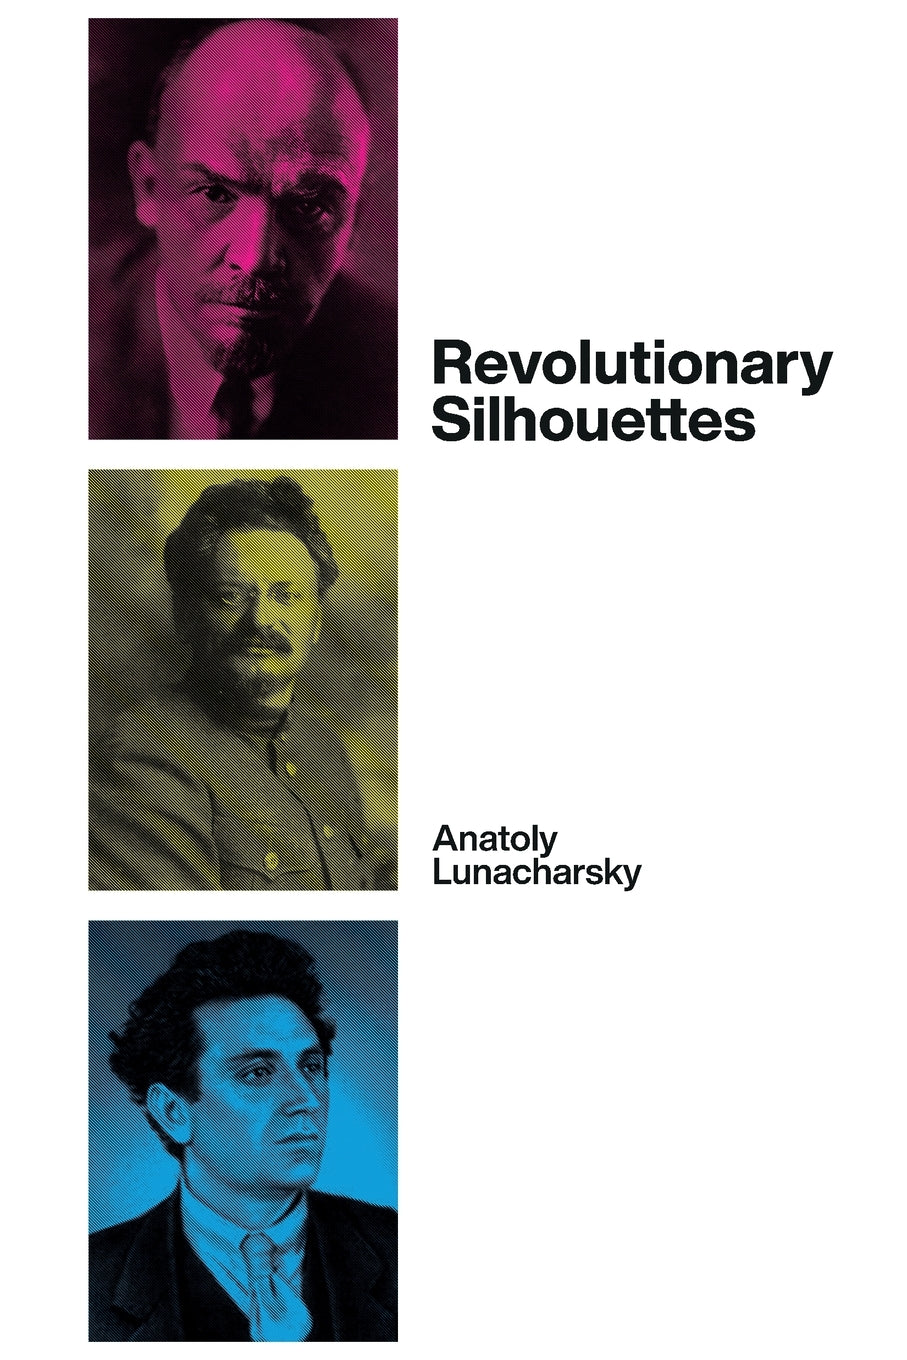 Revolutionary Silhouettes